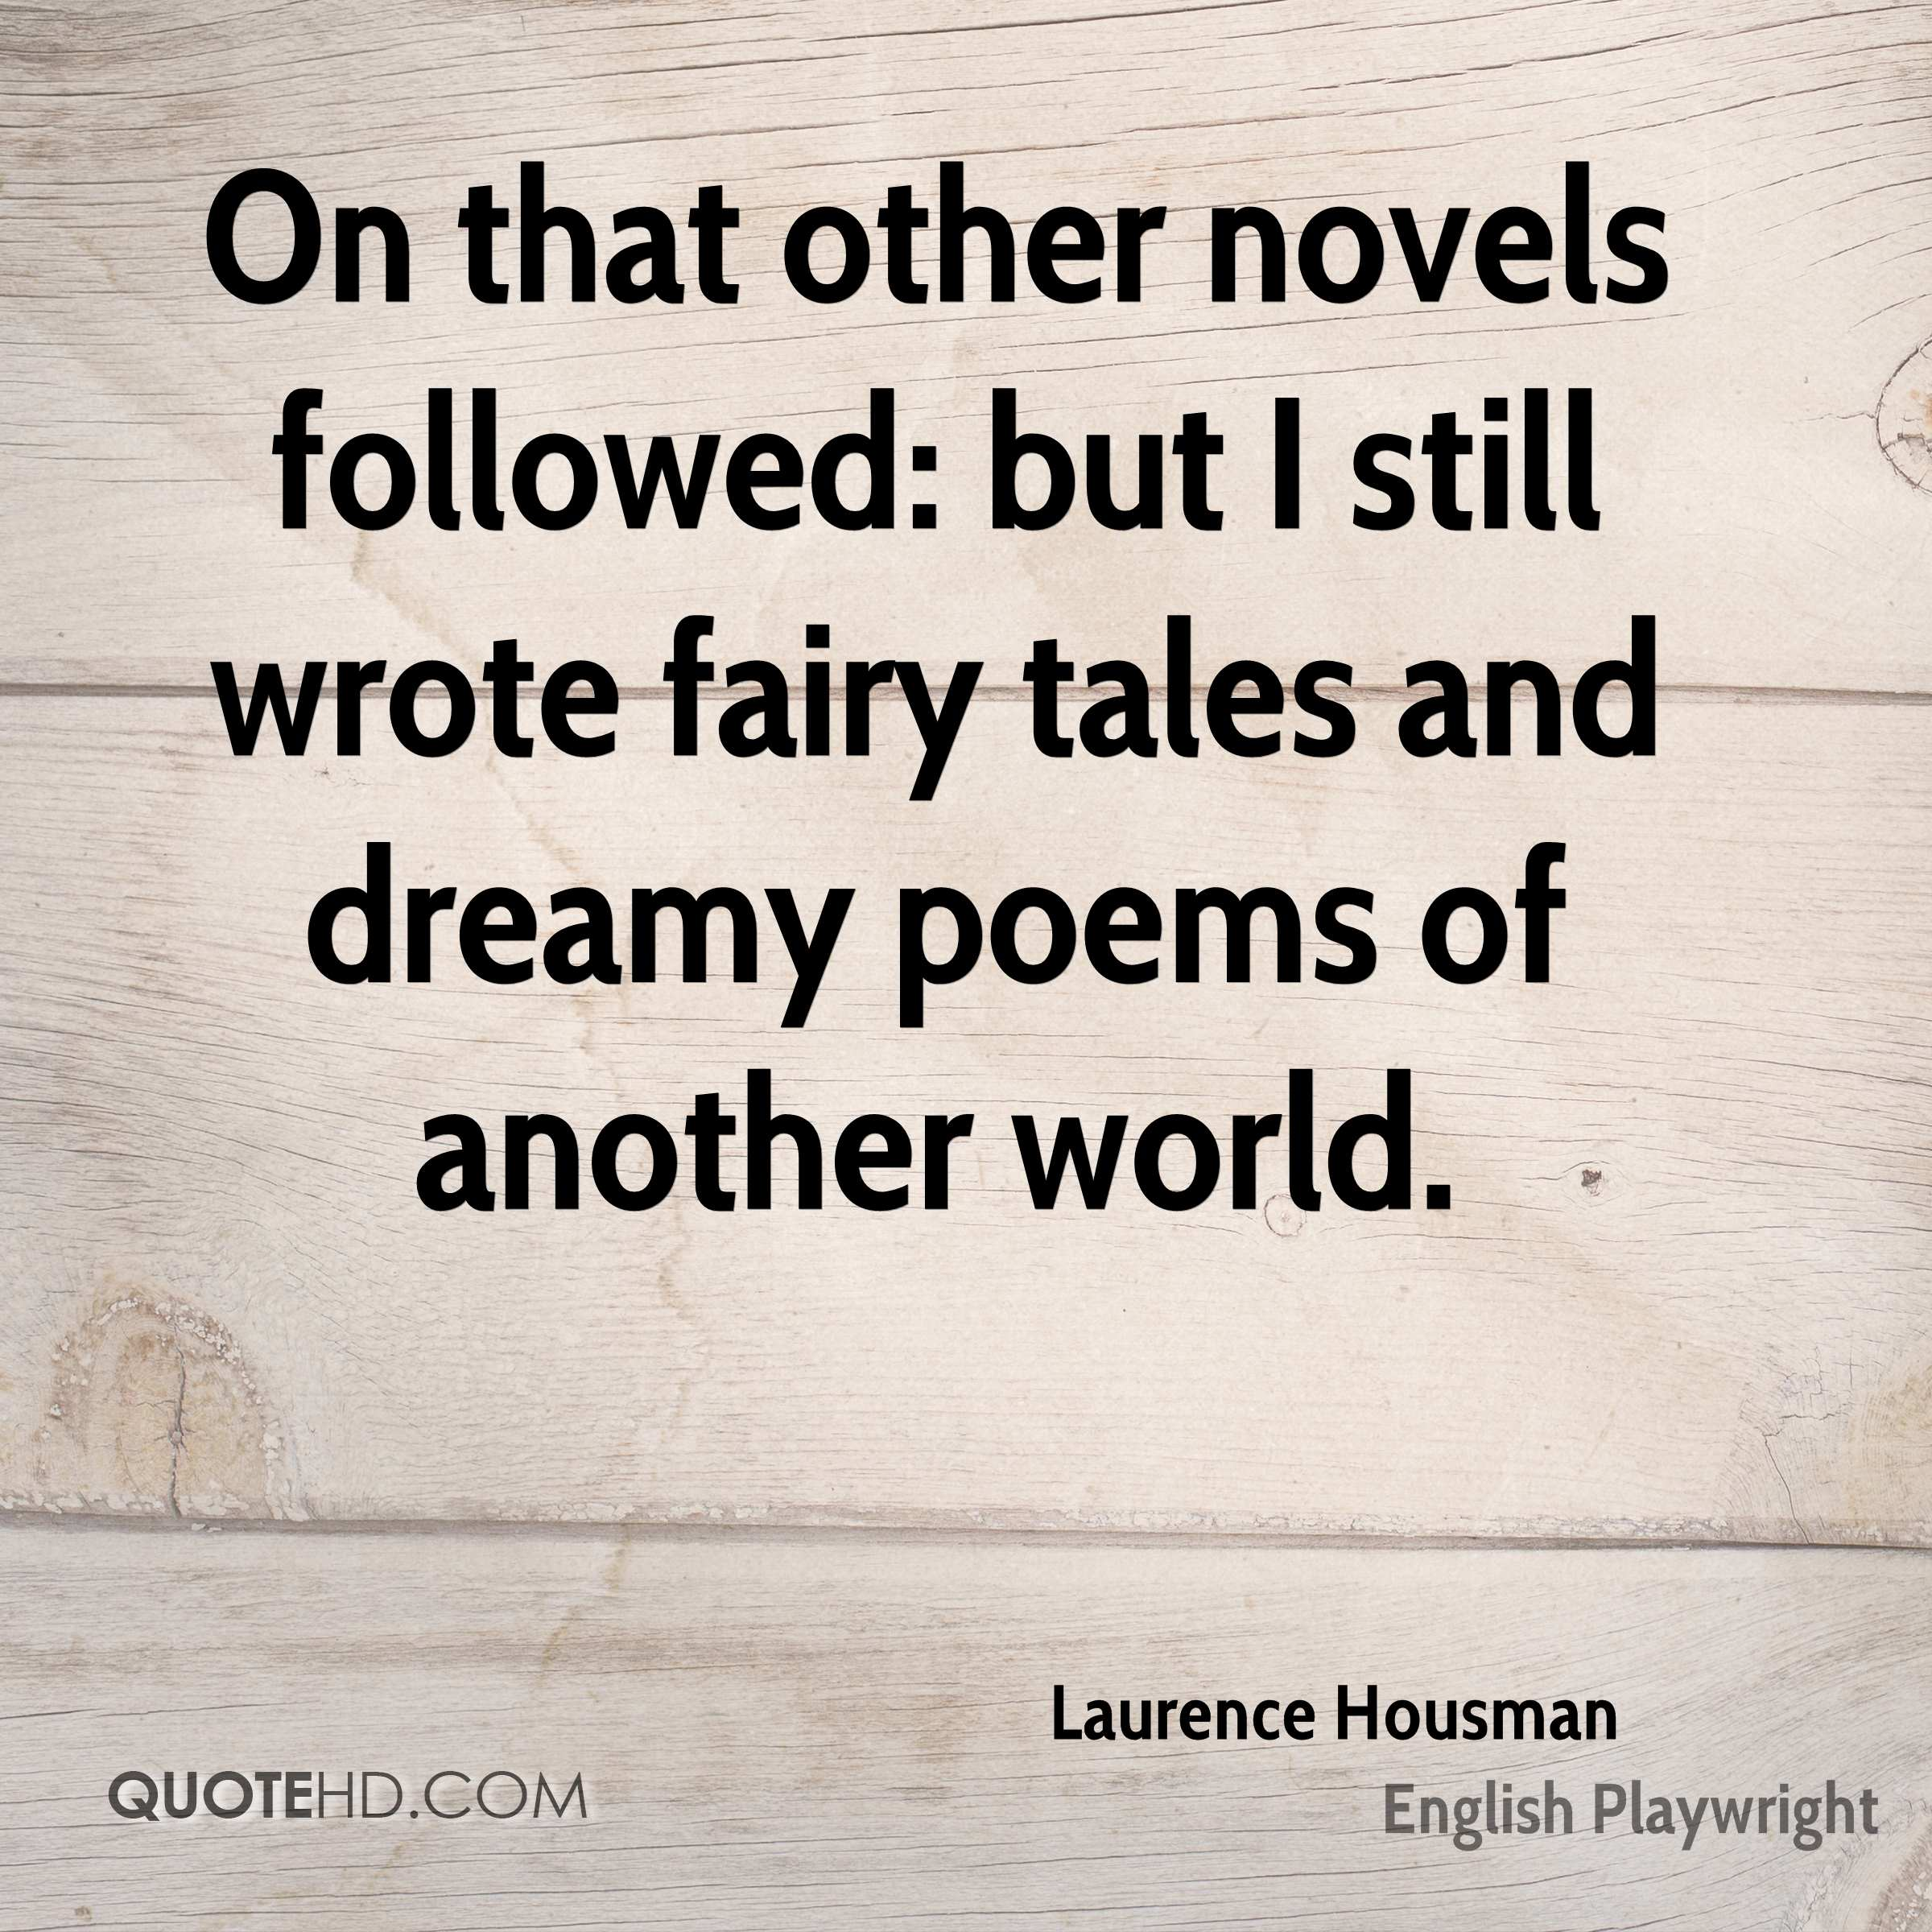 On that other novels followed: but I still wrote fairy tales and dreamy poems of another world.